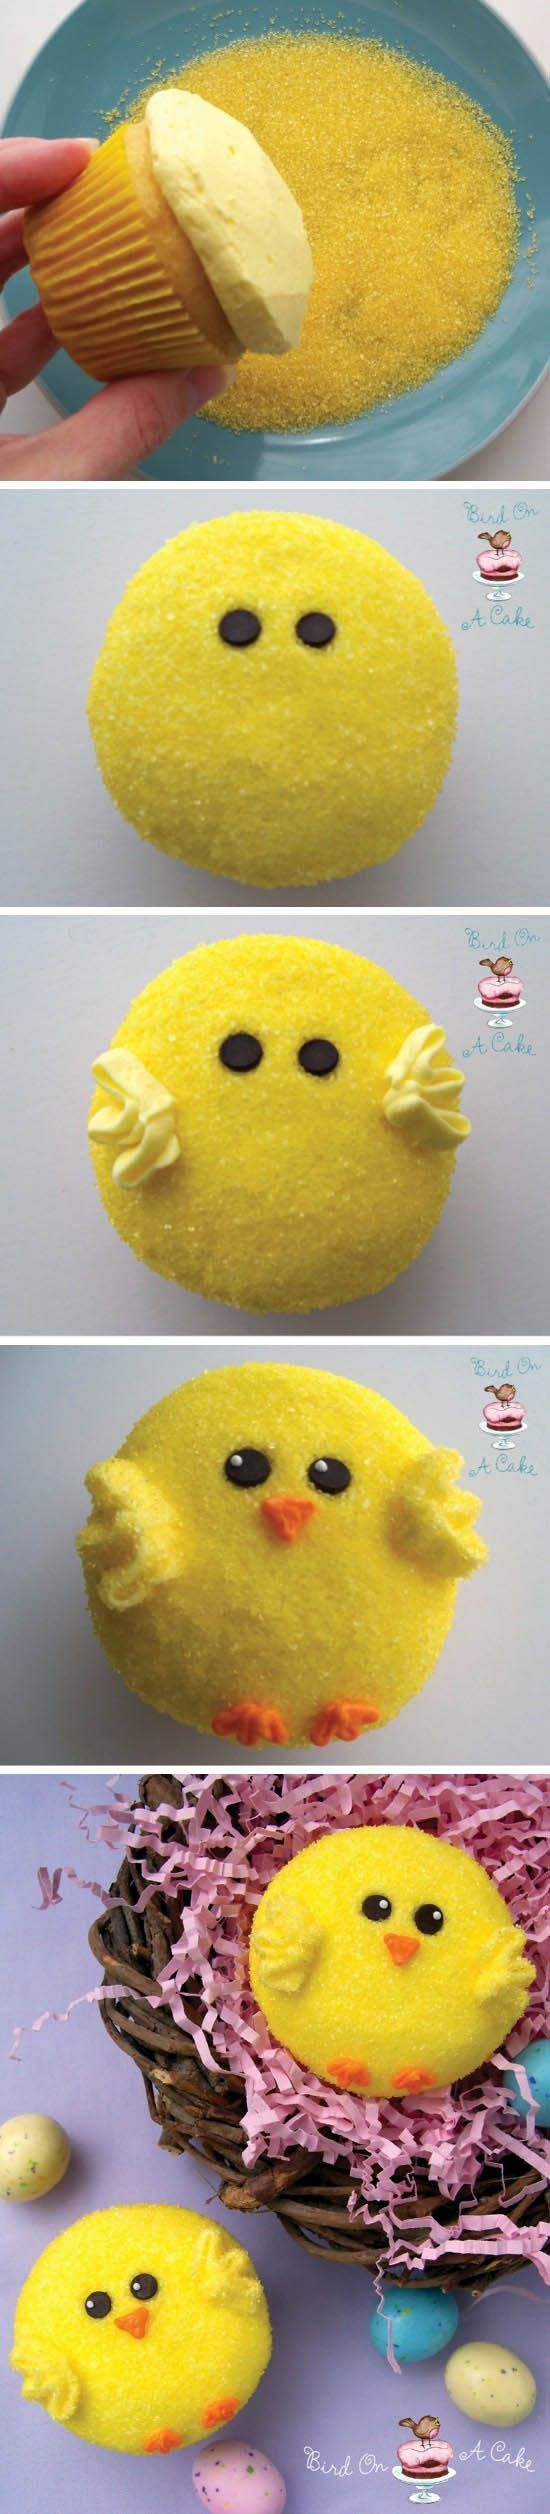 Easter-Chick-Cupcakes-Recipe SOOO cute!!. @Design Unlimited Rodick i'm going to make these for us for easter this year!!:)